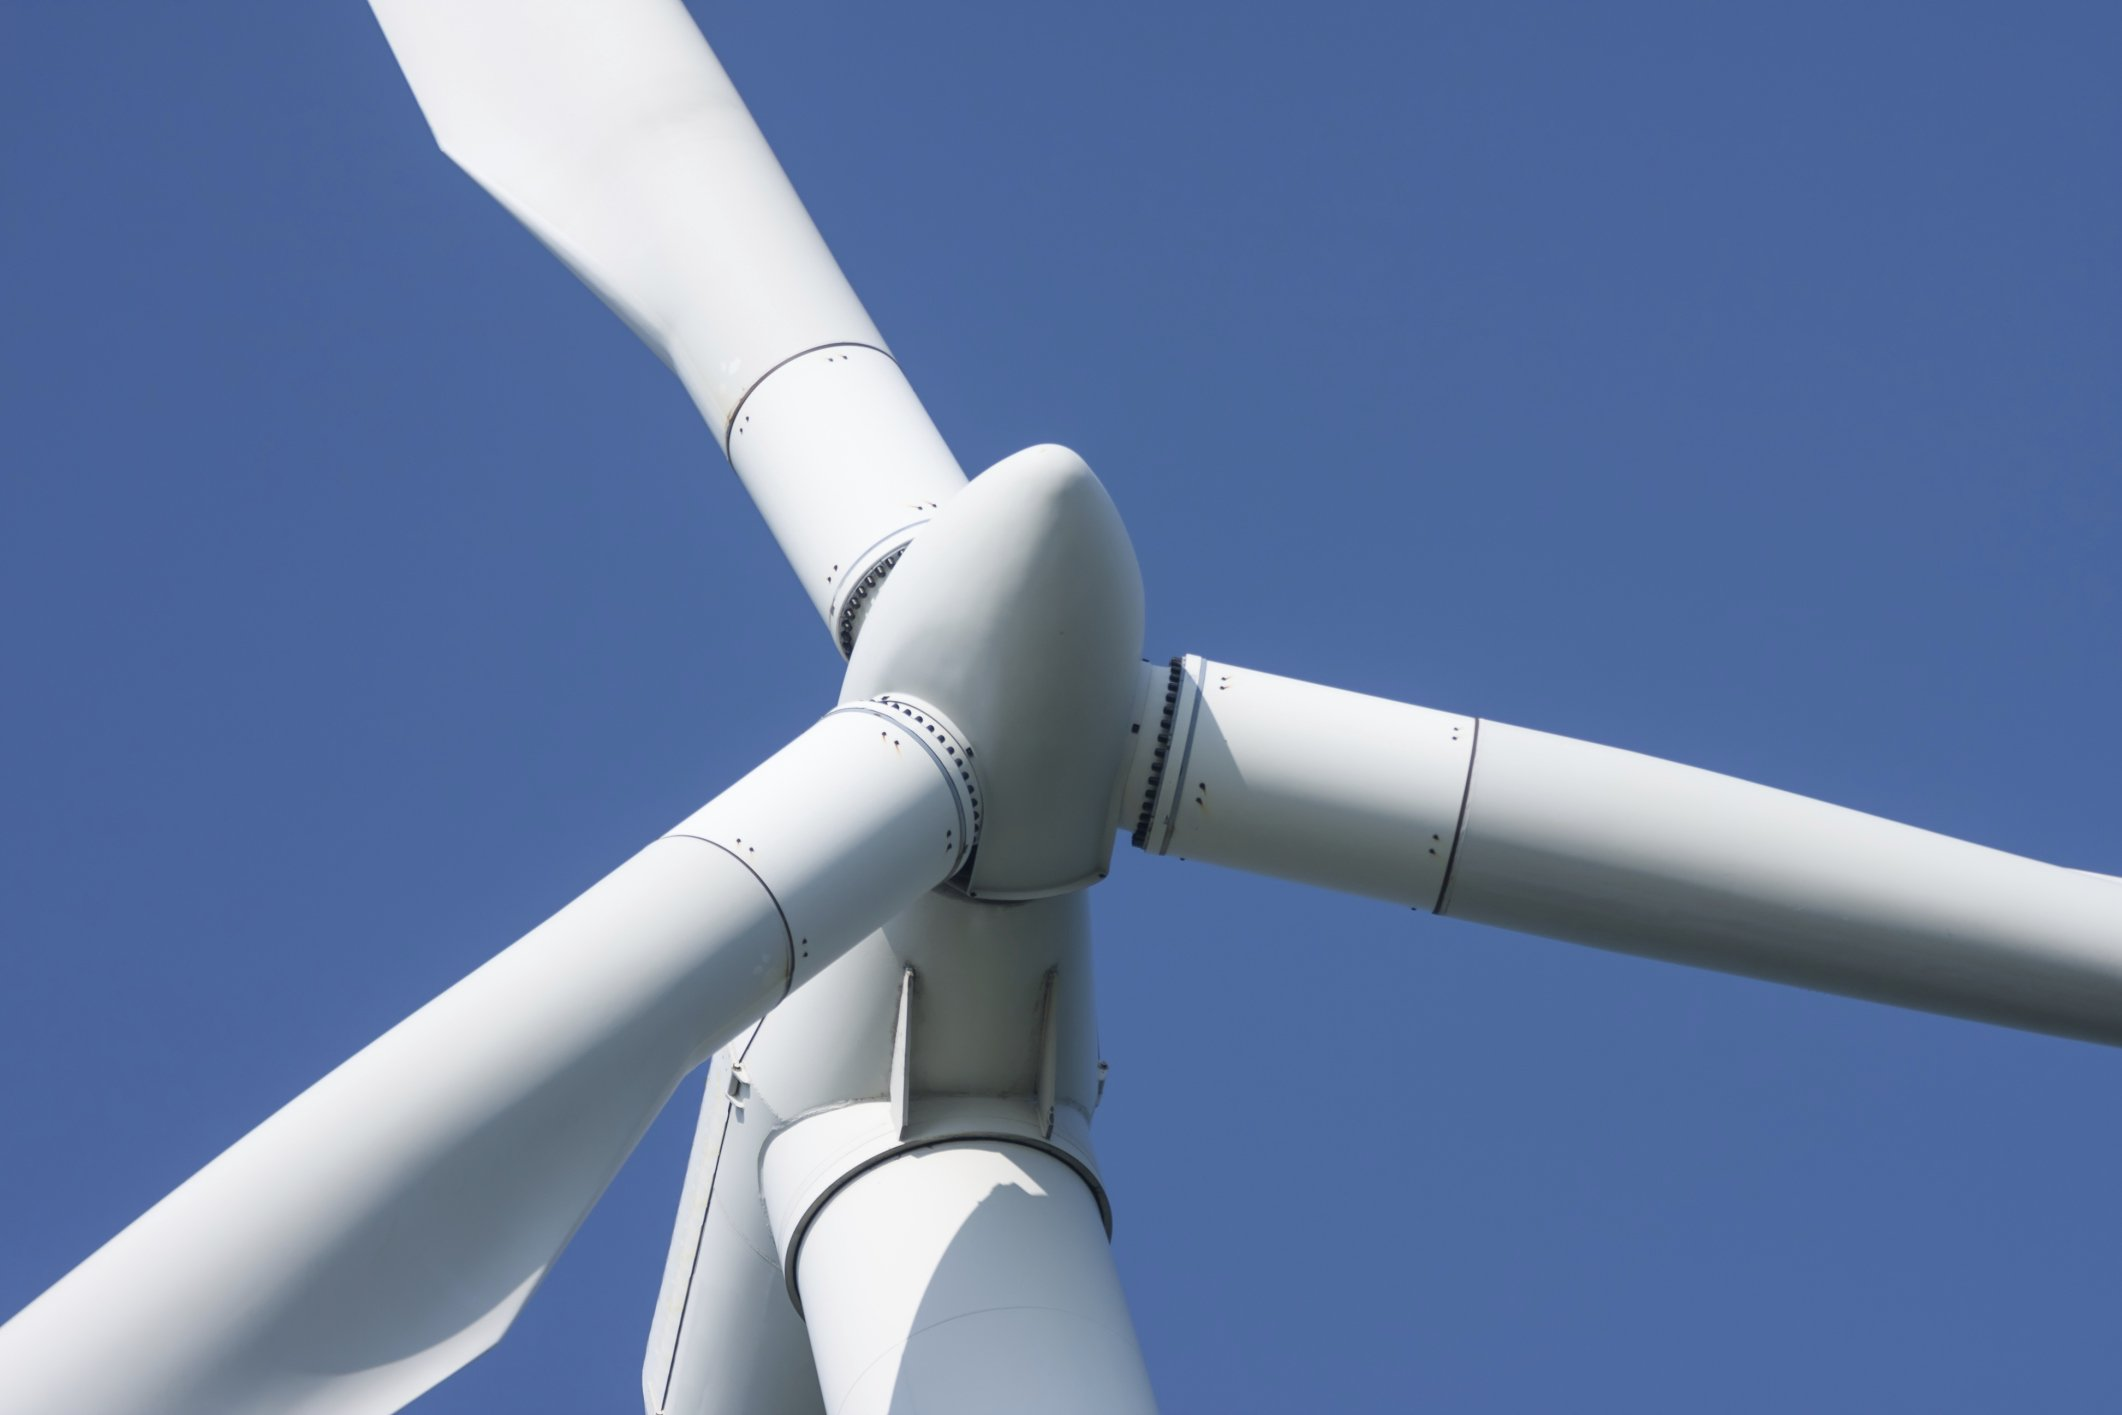 Wind Assisted Data Center Planned For Scotland Dcd Sustainable Development Windpower South Ayrshire Council Turbine Thinkstock Kruwt